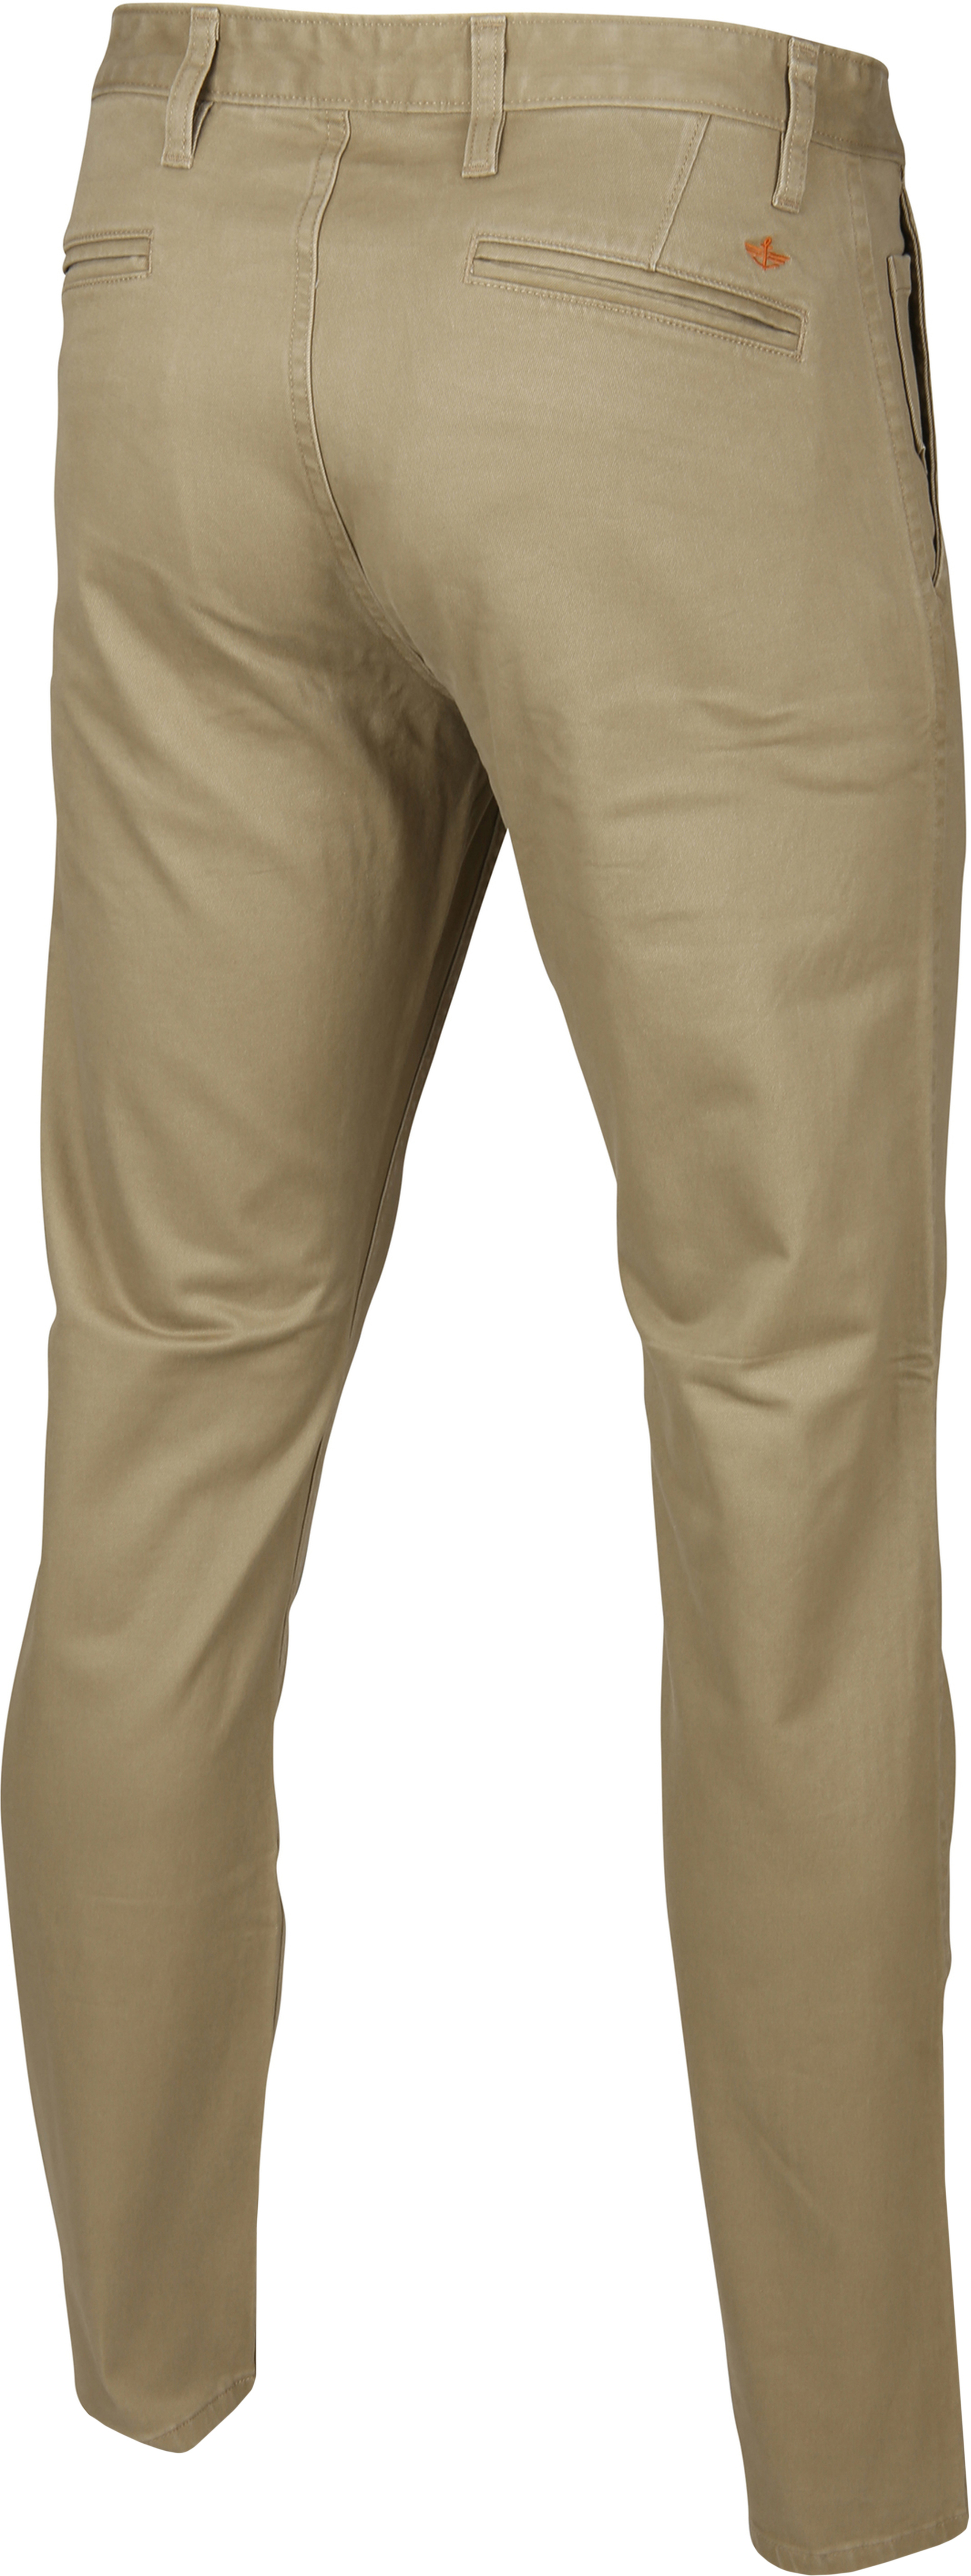 Dockers Alpha Stretch British Khaki